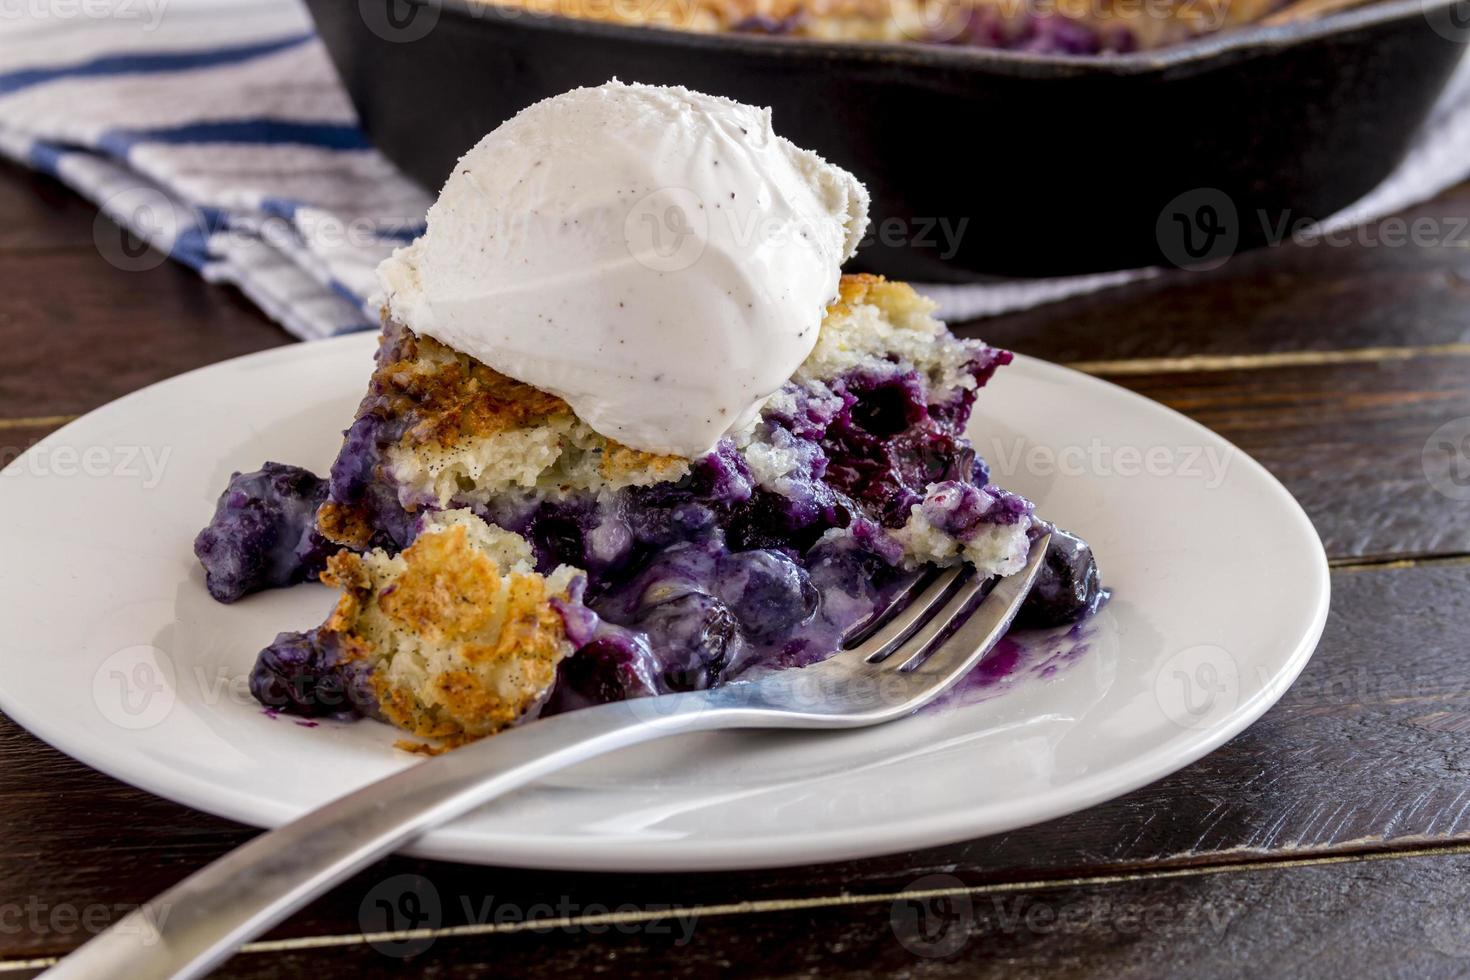 Blueberry Cobbler Baked in Cast Iron Skillet photo